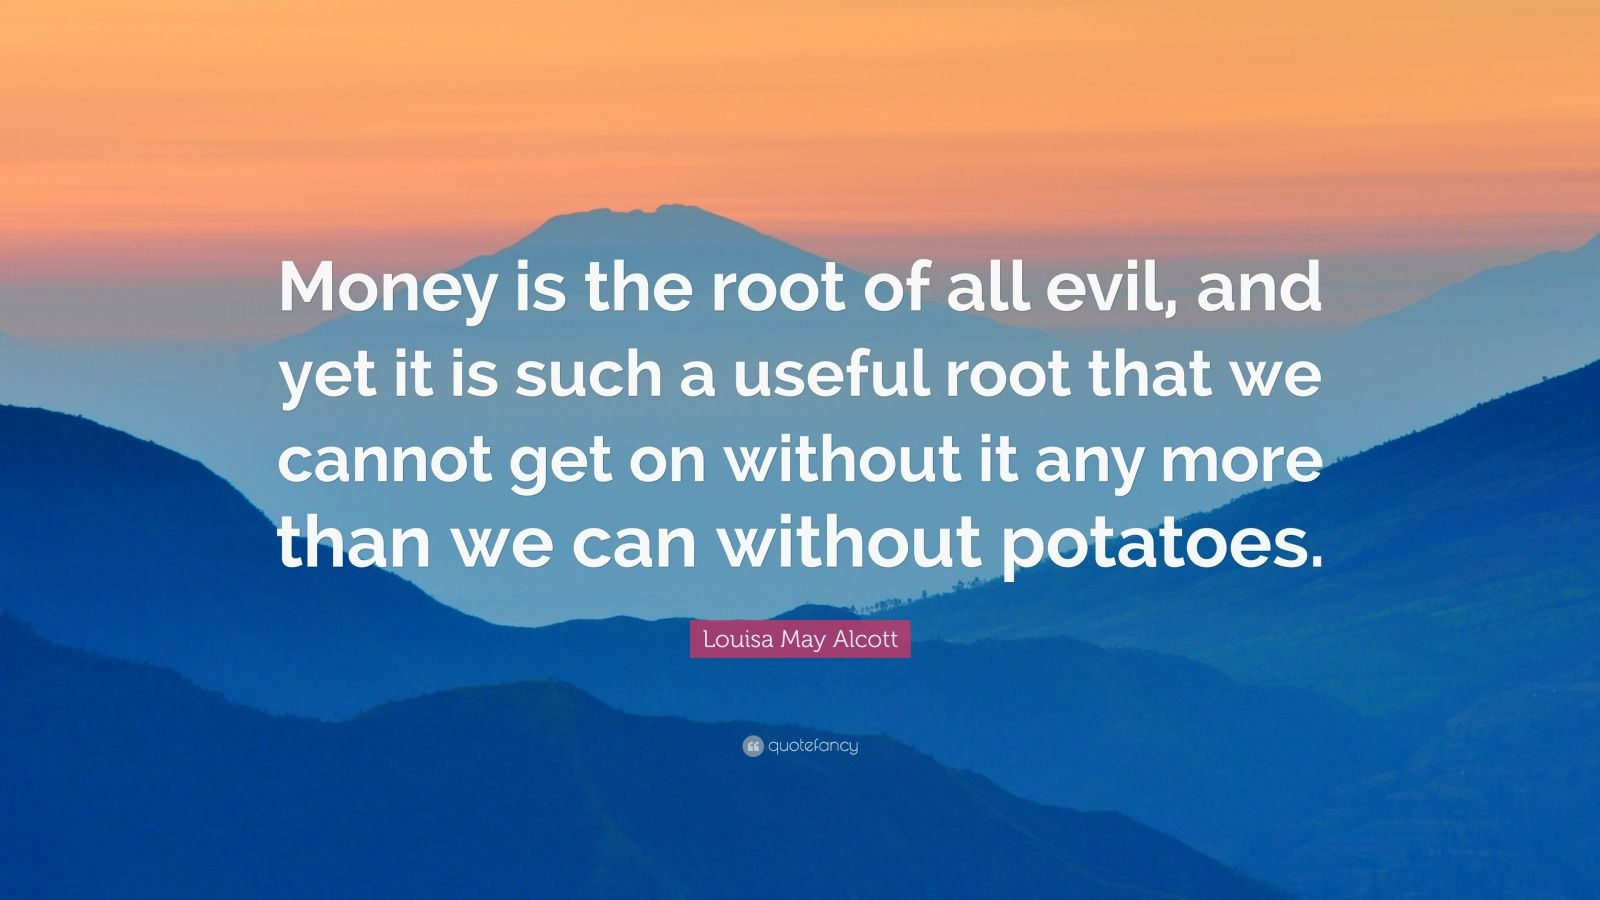 """Louisa May Alcott Quote: """"Money is the root of all evil, and yet it is such a useful root that we cannot get on without it any more than we can without potatoes."""""""